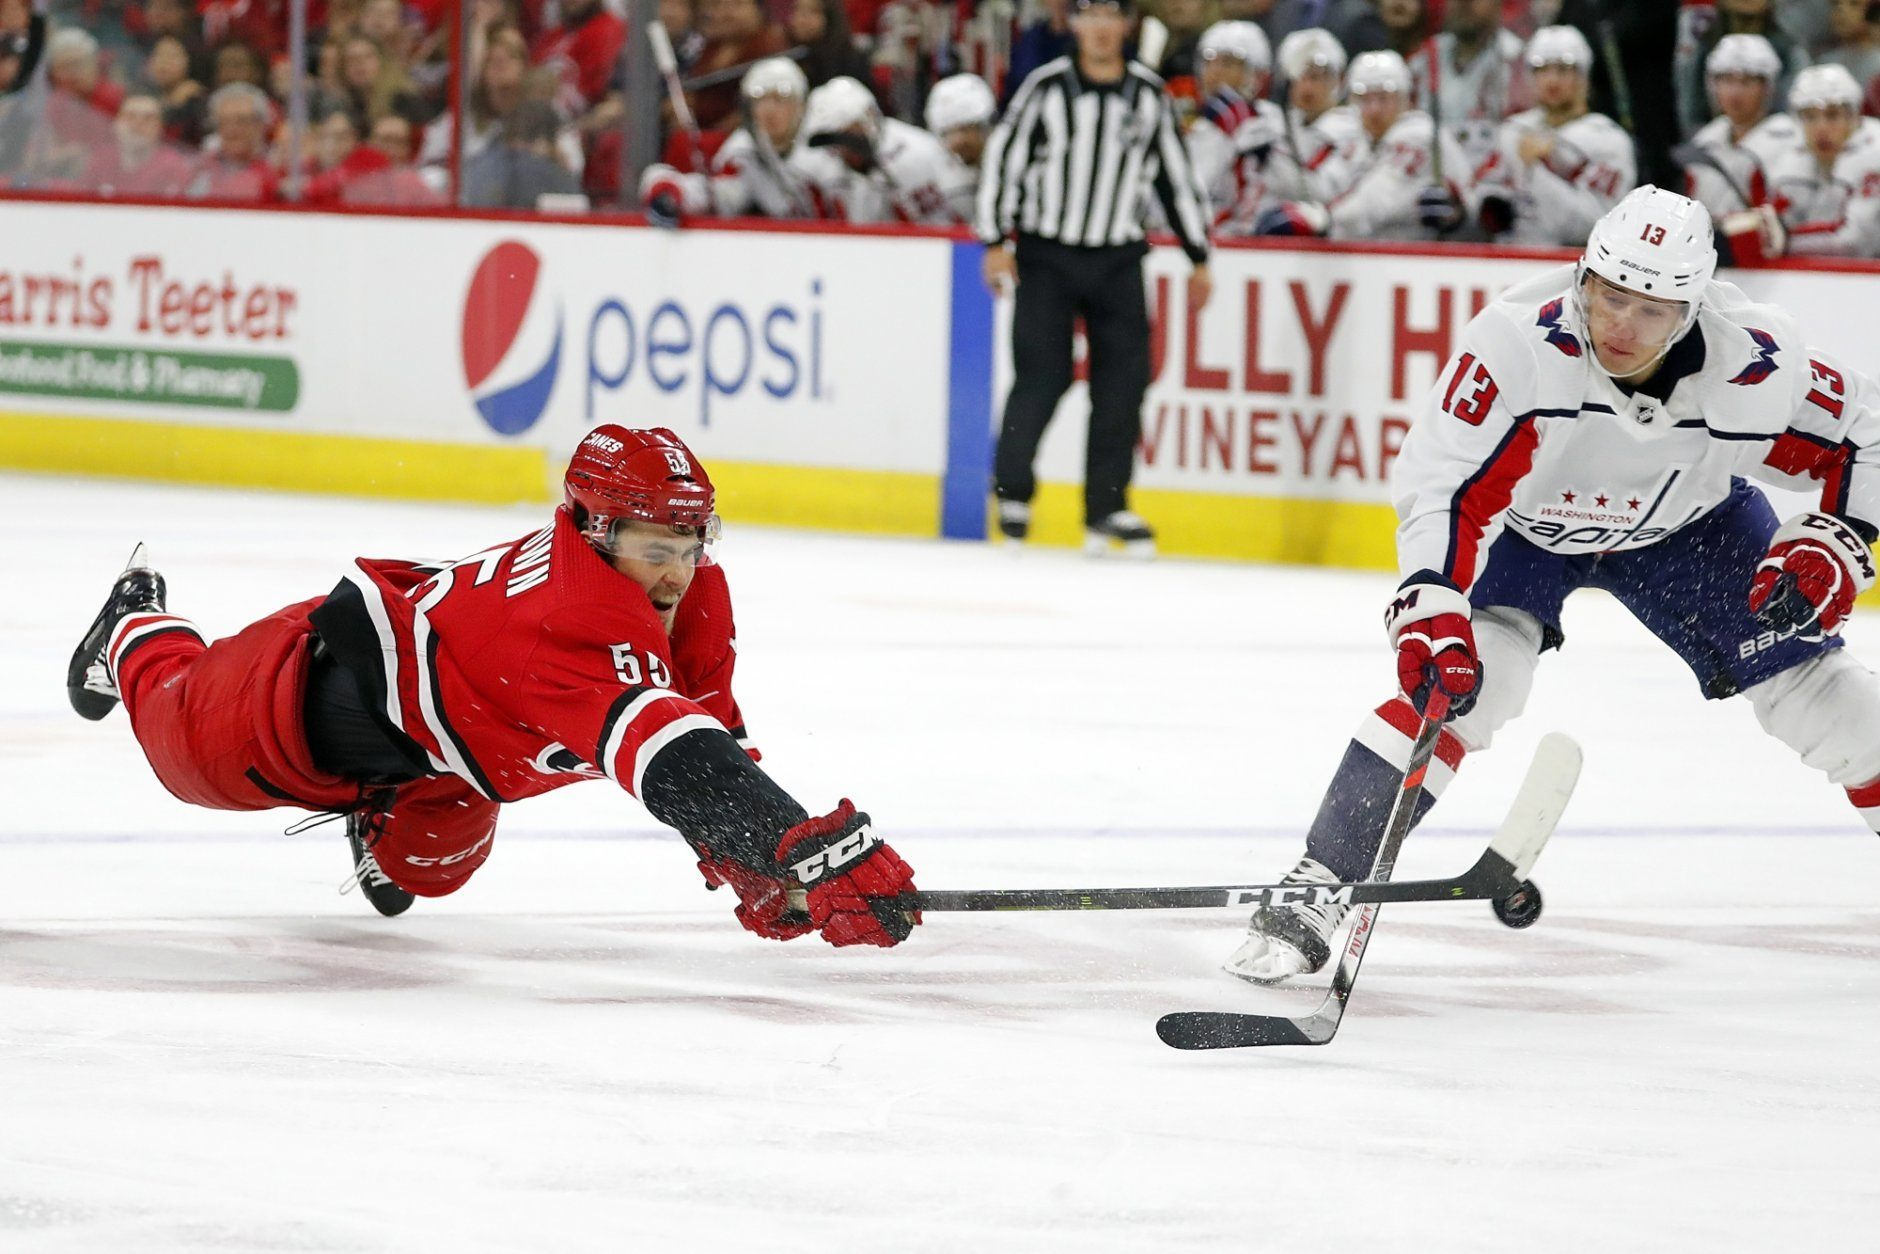 Carolina Hurricanes' Roland McKeown (55) dives to tip the puck away from Washington Capitals' Jakub Vrana (13), of the Czech Republic, during the third period of an NHL preseason hockey game in Raleigh, N.C., Sunday, Sept. 29, 2019. (AP Photo/Karl B DeBlaker)